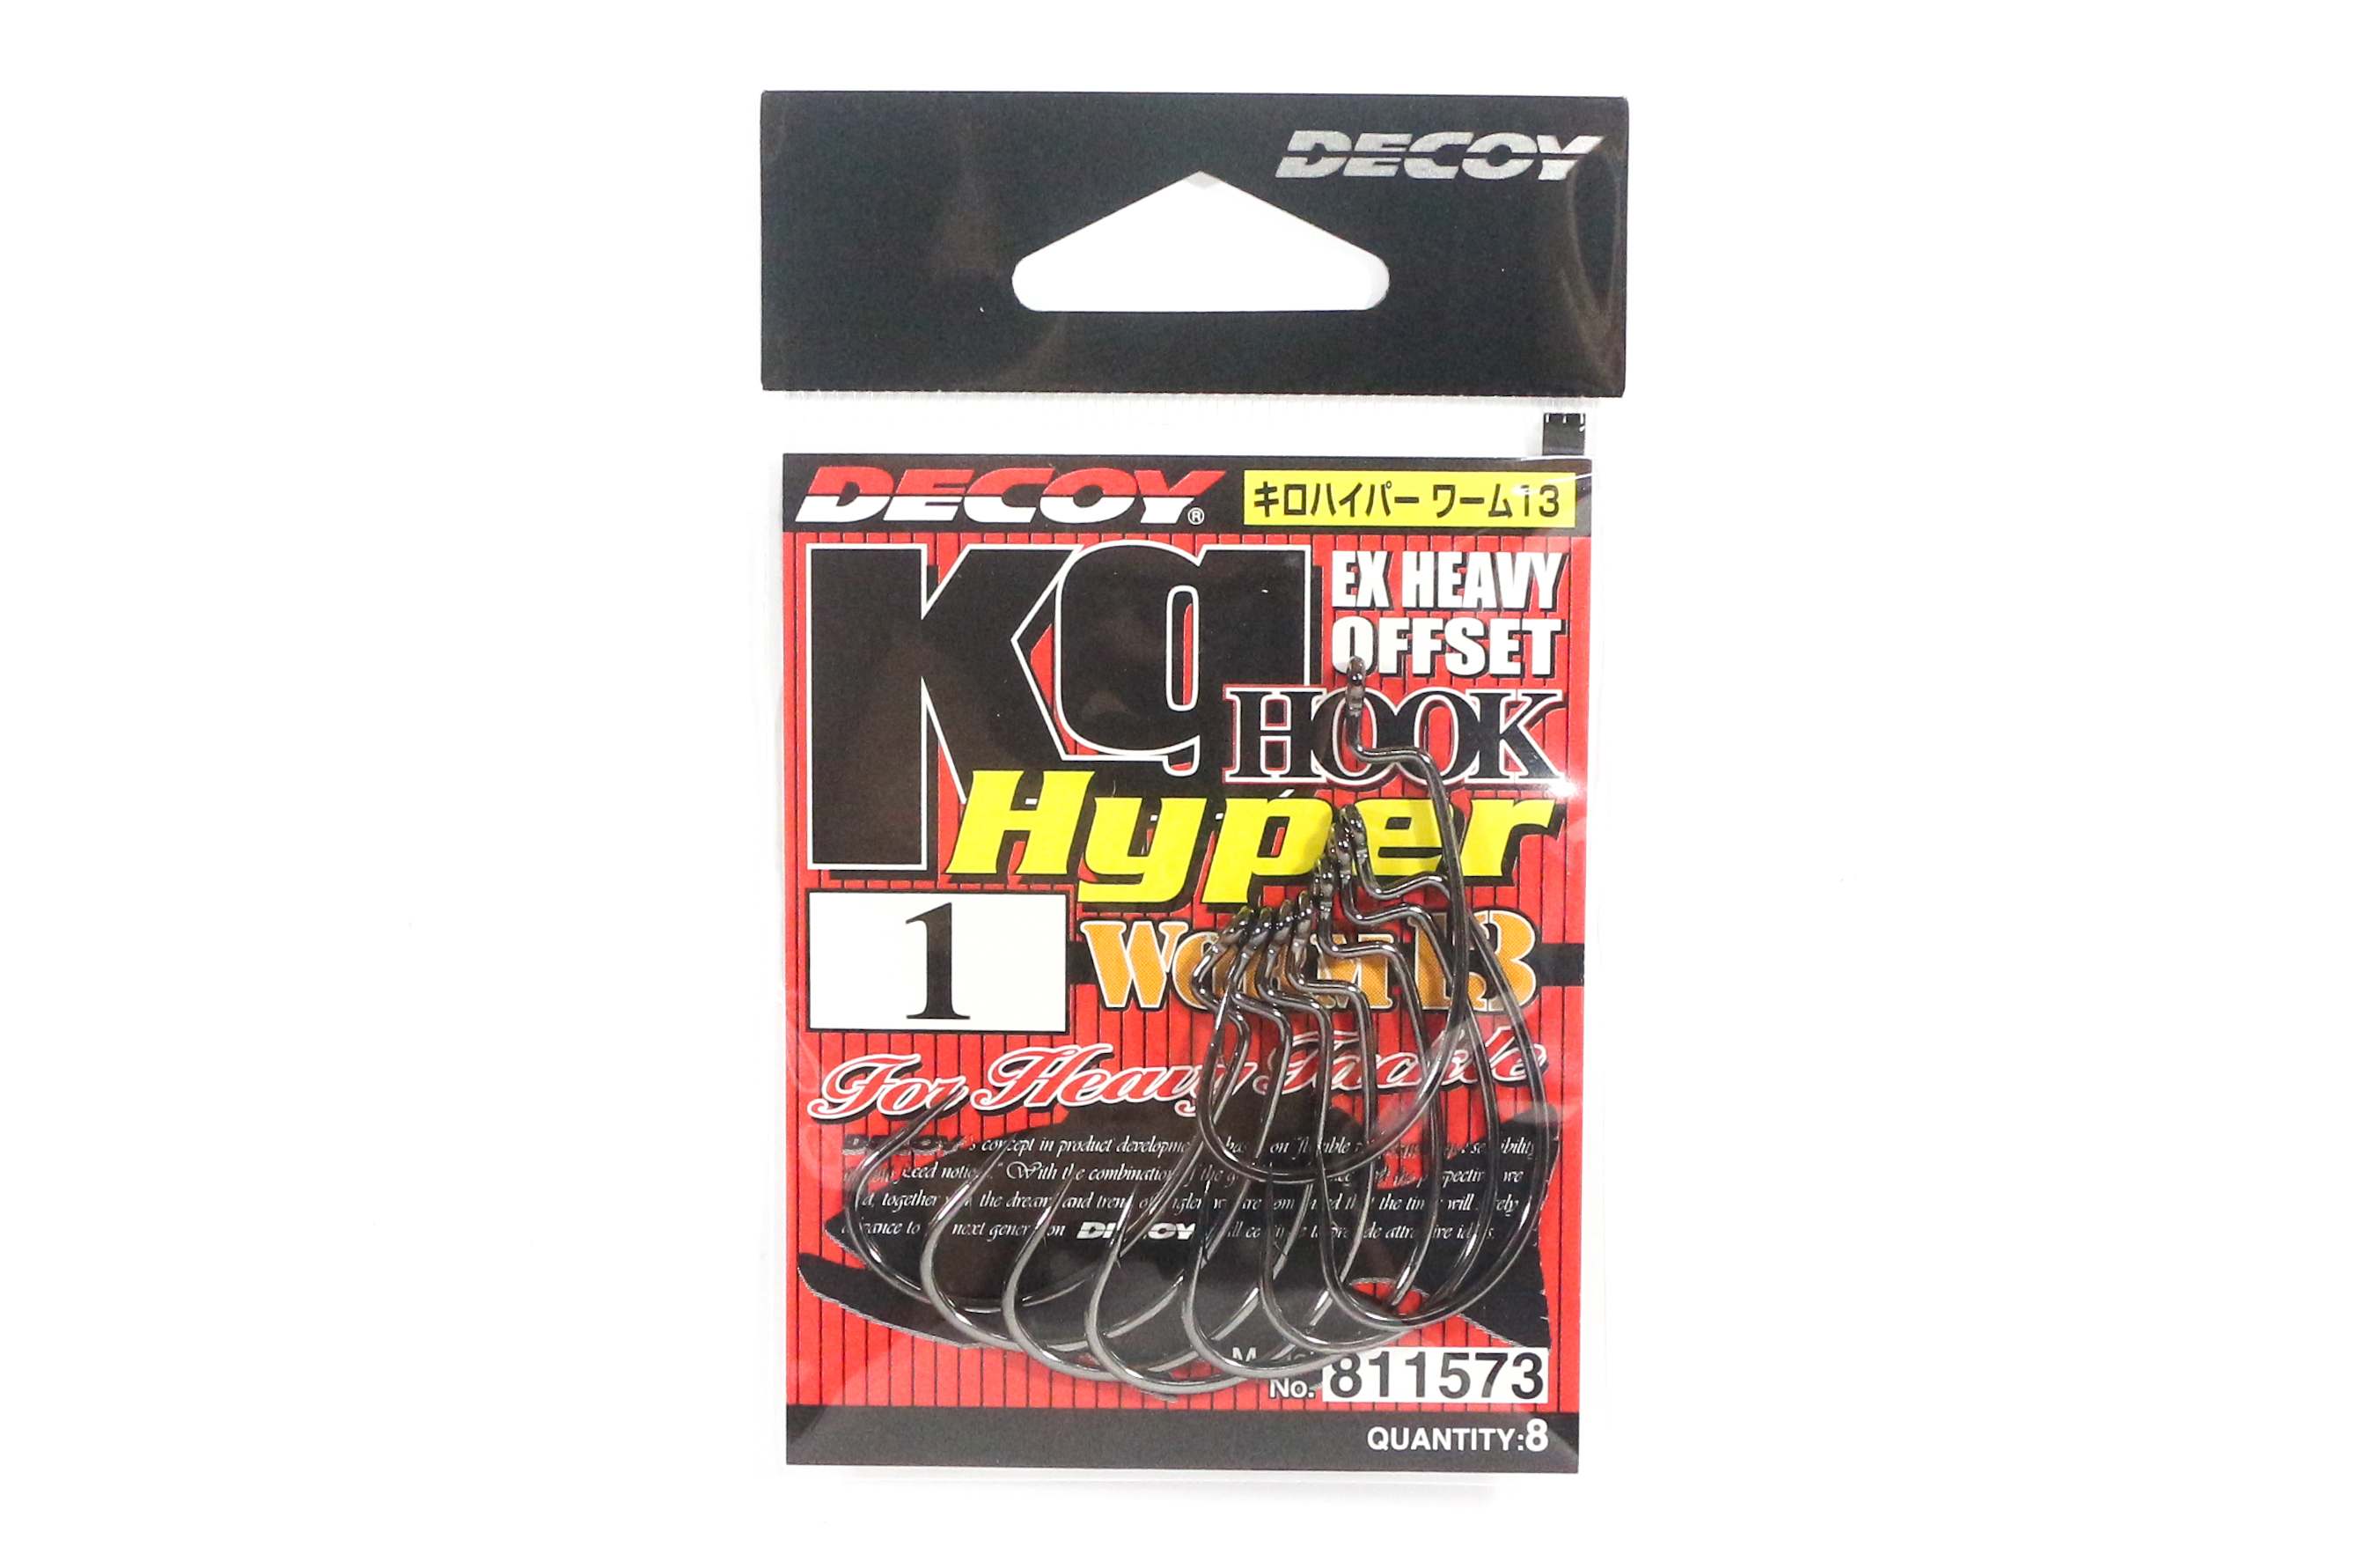 Decoy Worm 13KG Hyper Extra Heavy Duty Offset Worm Hooks Size 1 (1573)